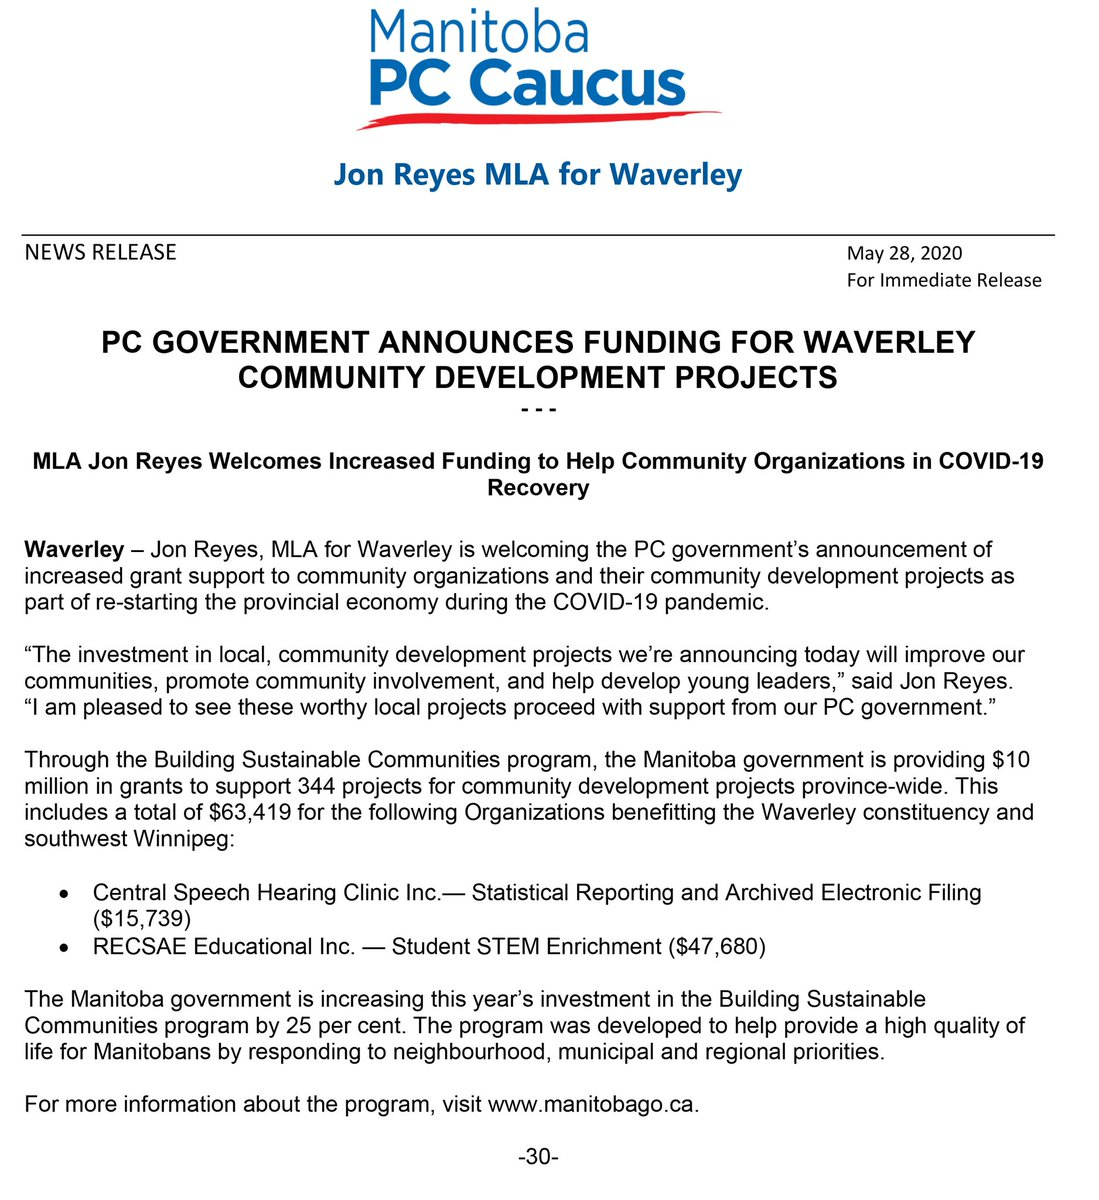 test Twitter Media - The Building Sustainable Communities program is providing $10 million in grants and I am happy to announce local investments in the constituency of Waverley. For more information on grants and other resources go to https://t.co/PbuDozXKWd #community #support #mbpoli https://t.co/MP0qZH9RwL